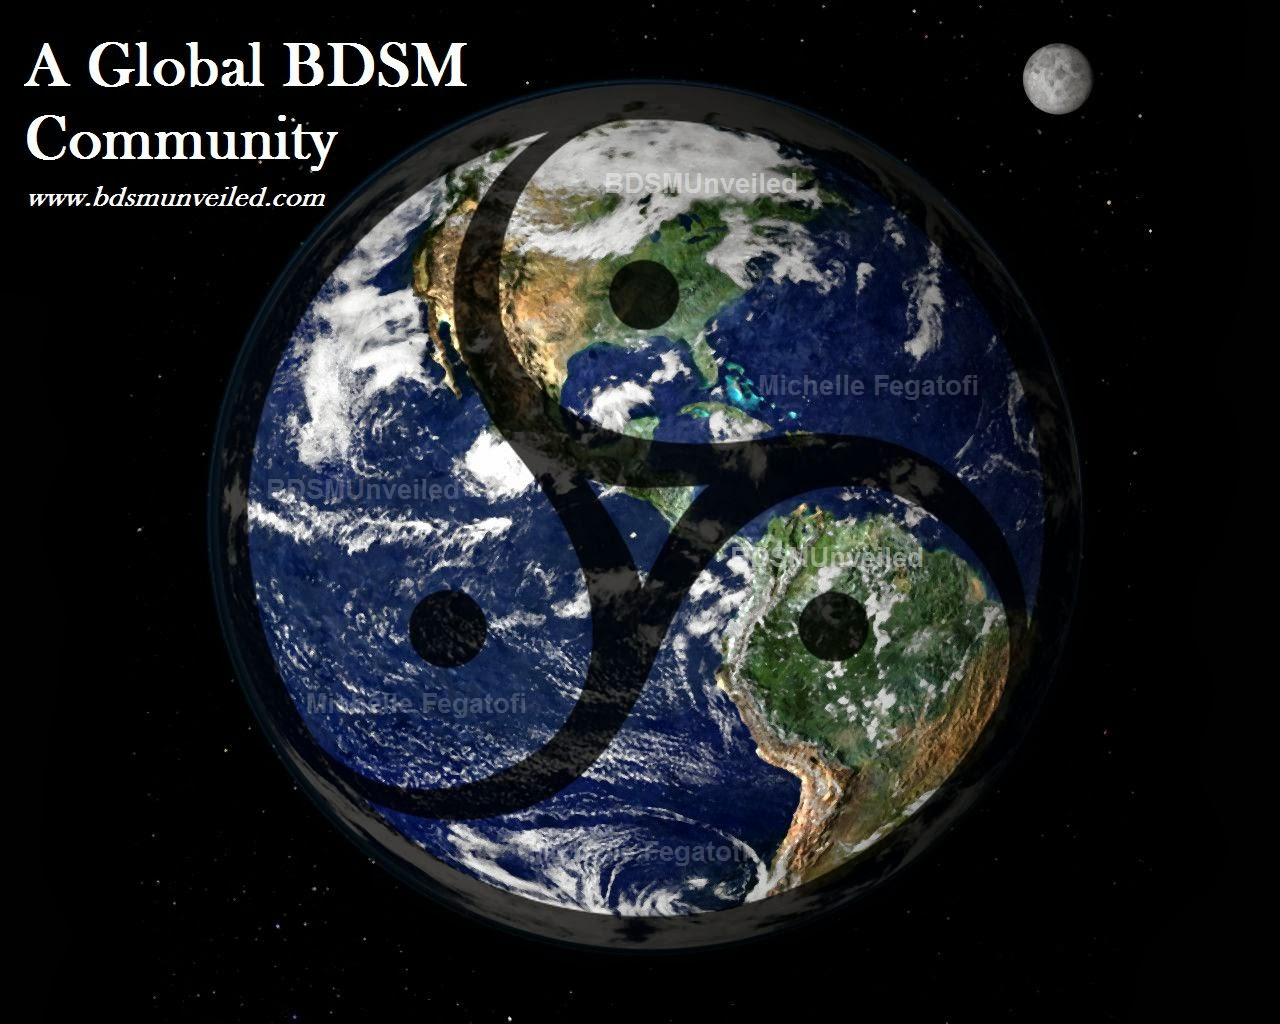 United Global BDSM Community